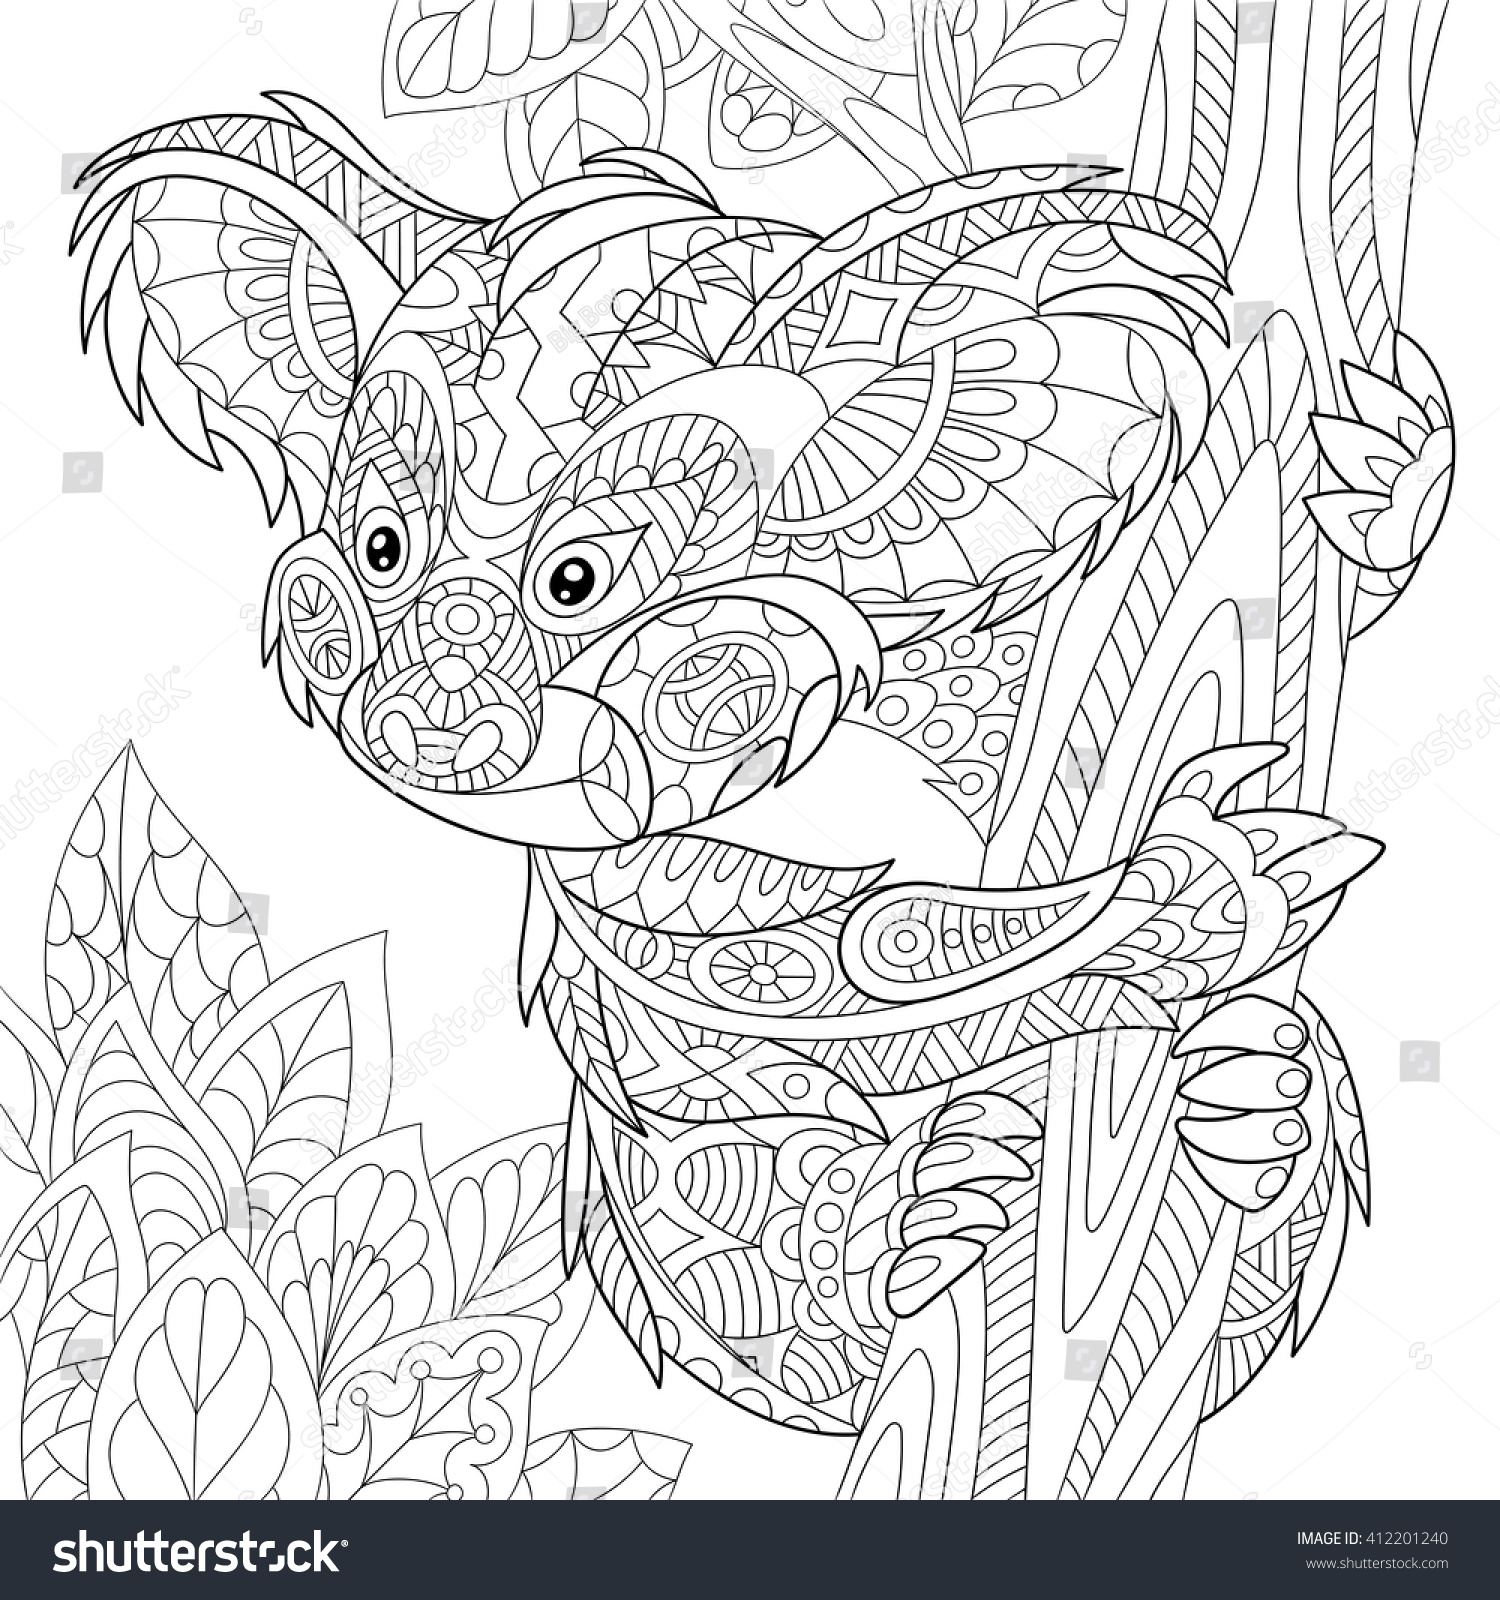 Zentangle Stylized Cartoon Koala Bear Sitting Stock Vector Royalty